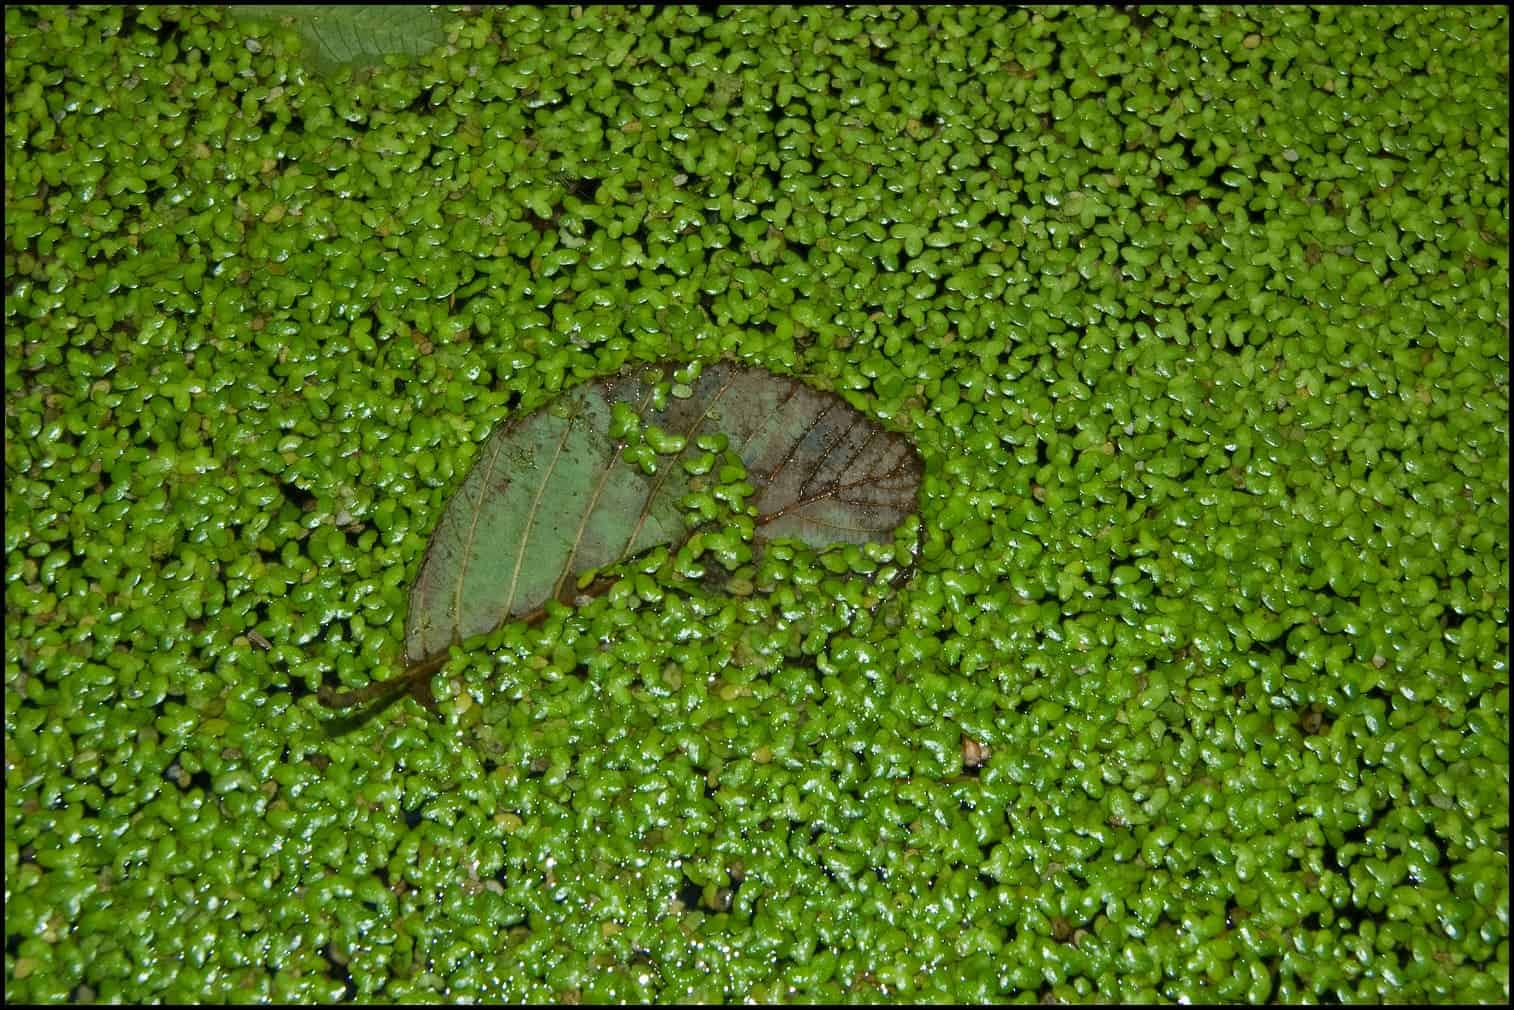 Duckweed is the fastest growing plant in the world.  Now we know why